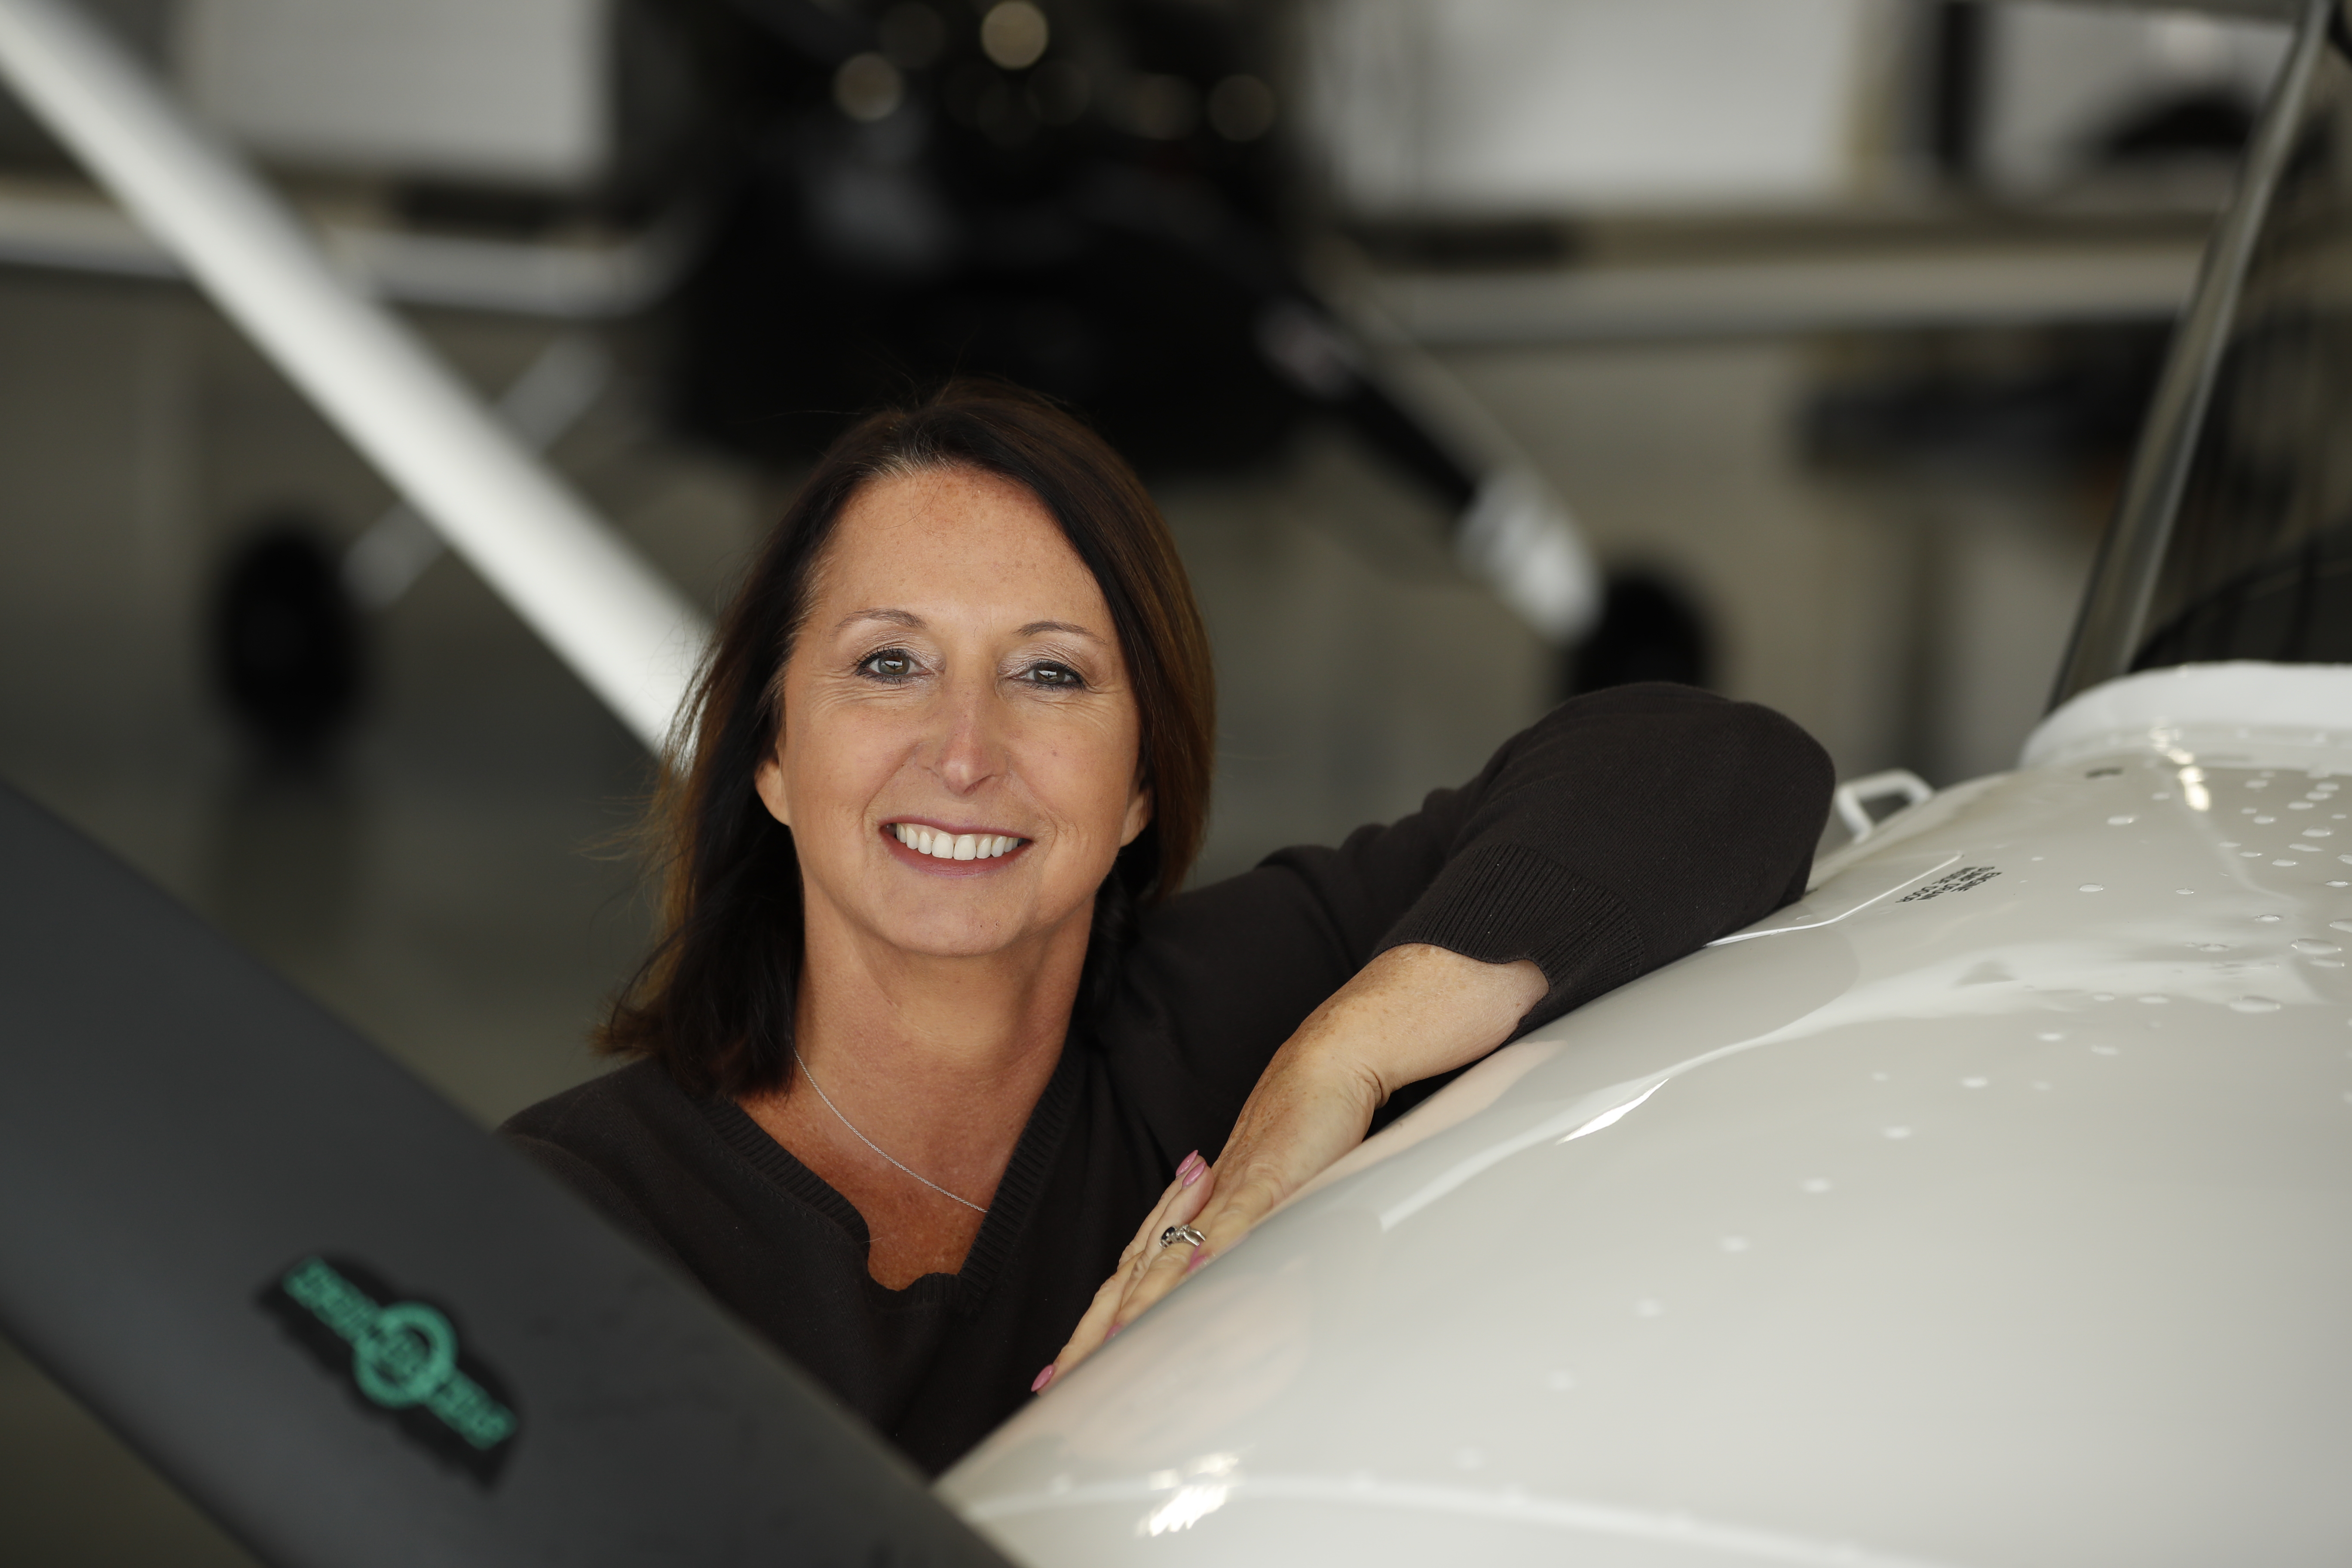 Second round of AOPA Staff portraits